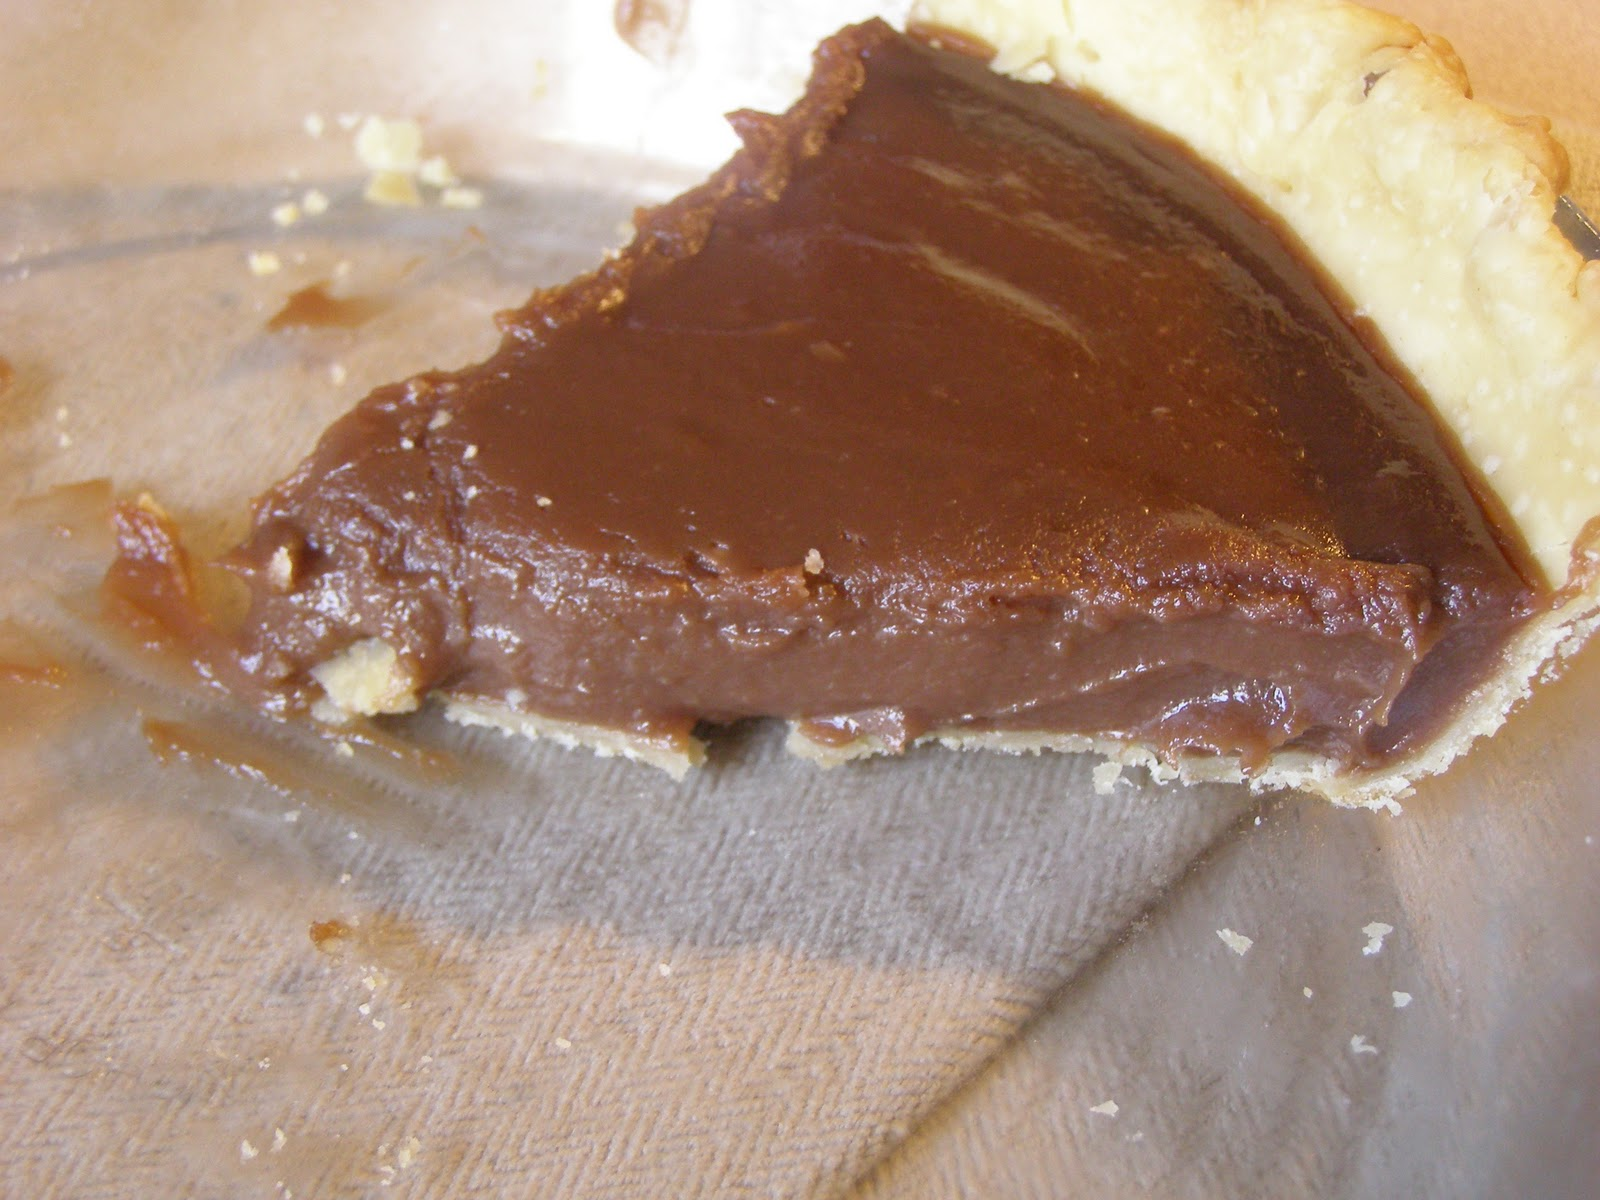 The Rickett Chronicles: Recipe: Grandma Lewis' Chocolate Pie